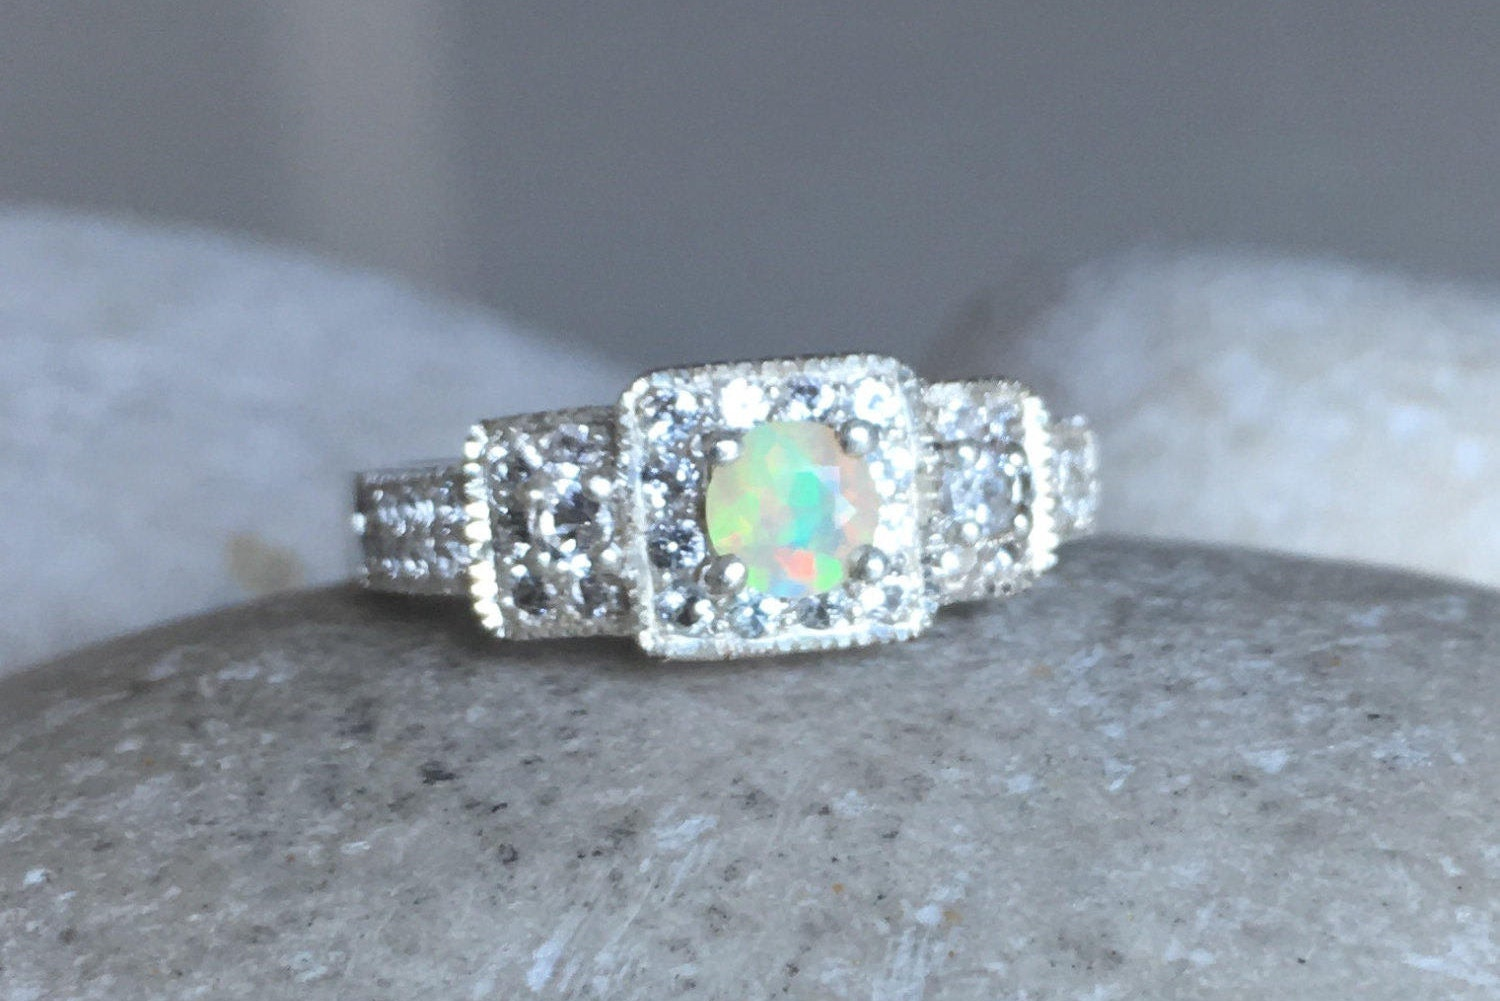 opal natural diamonds flashopal gold rings wedding engagement set ring colorful diamond